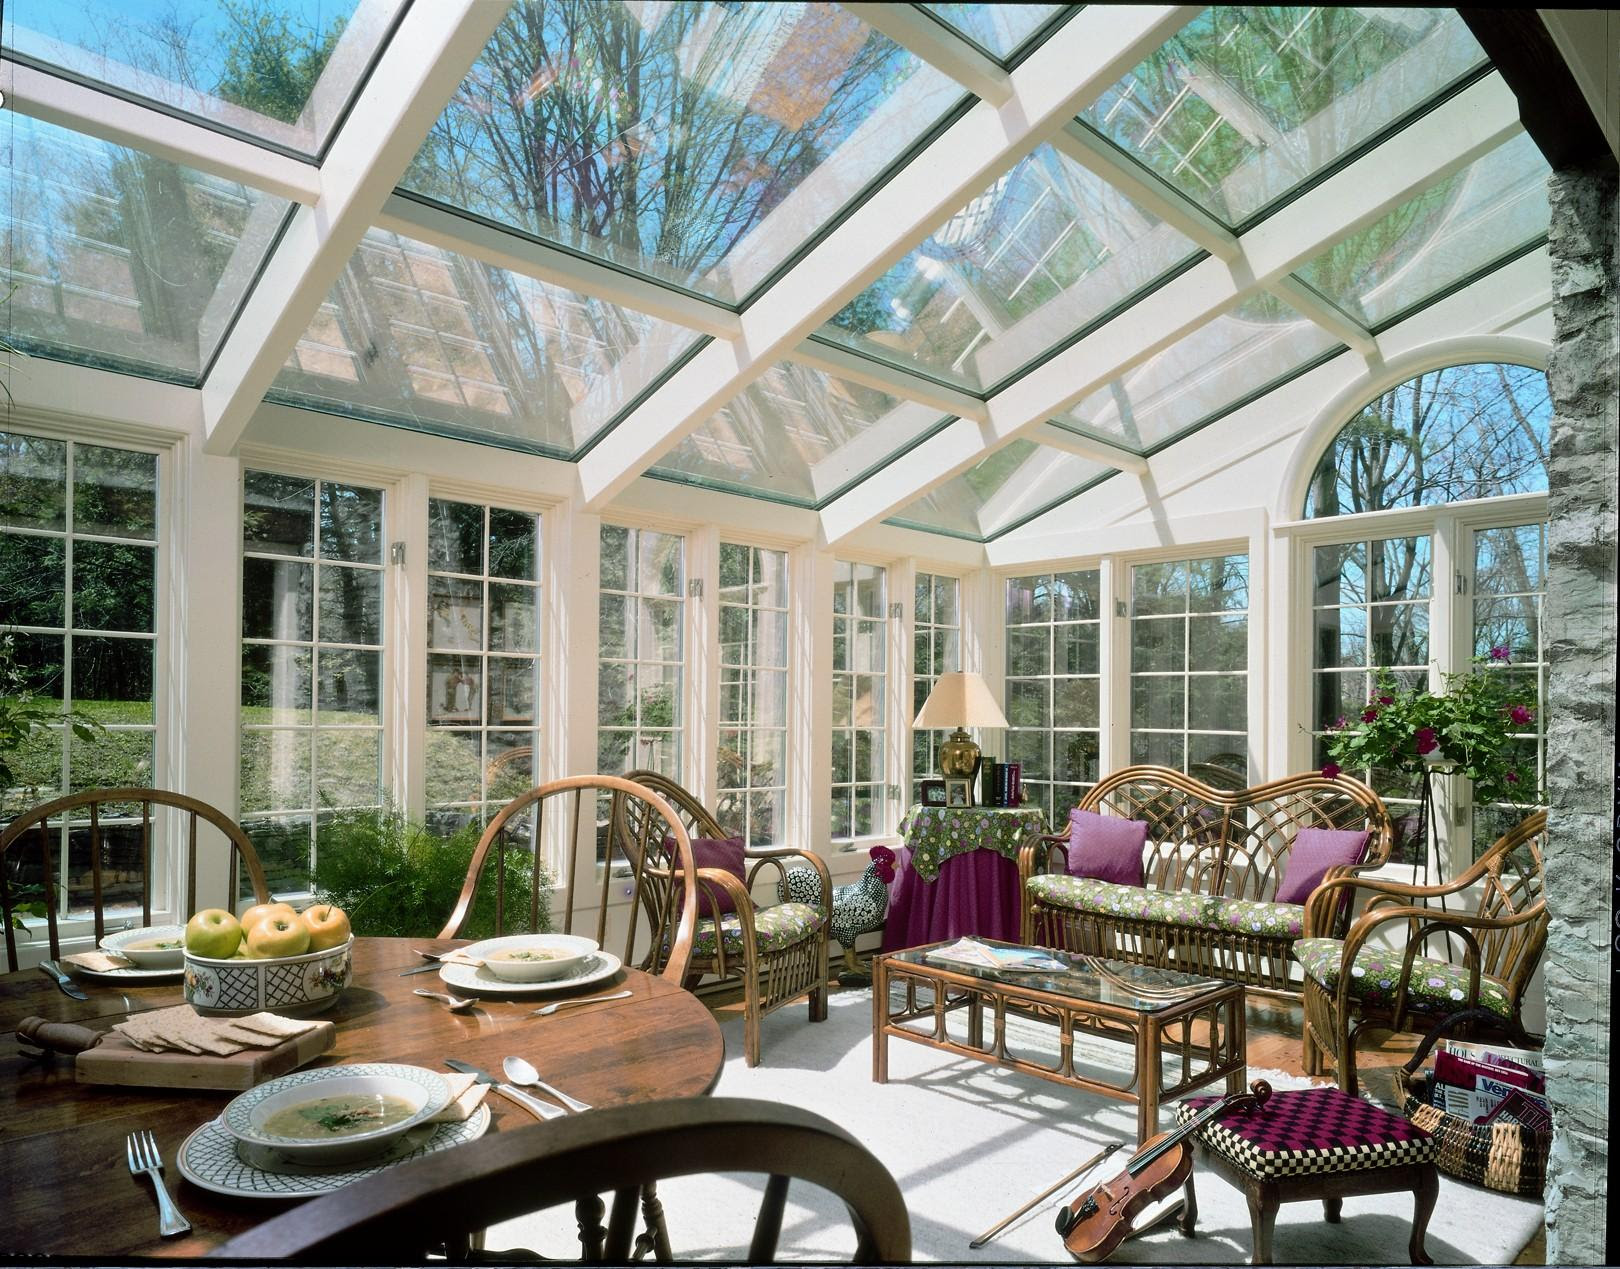 Sunroom Design Ideas for Optimal Functionality and Elegance